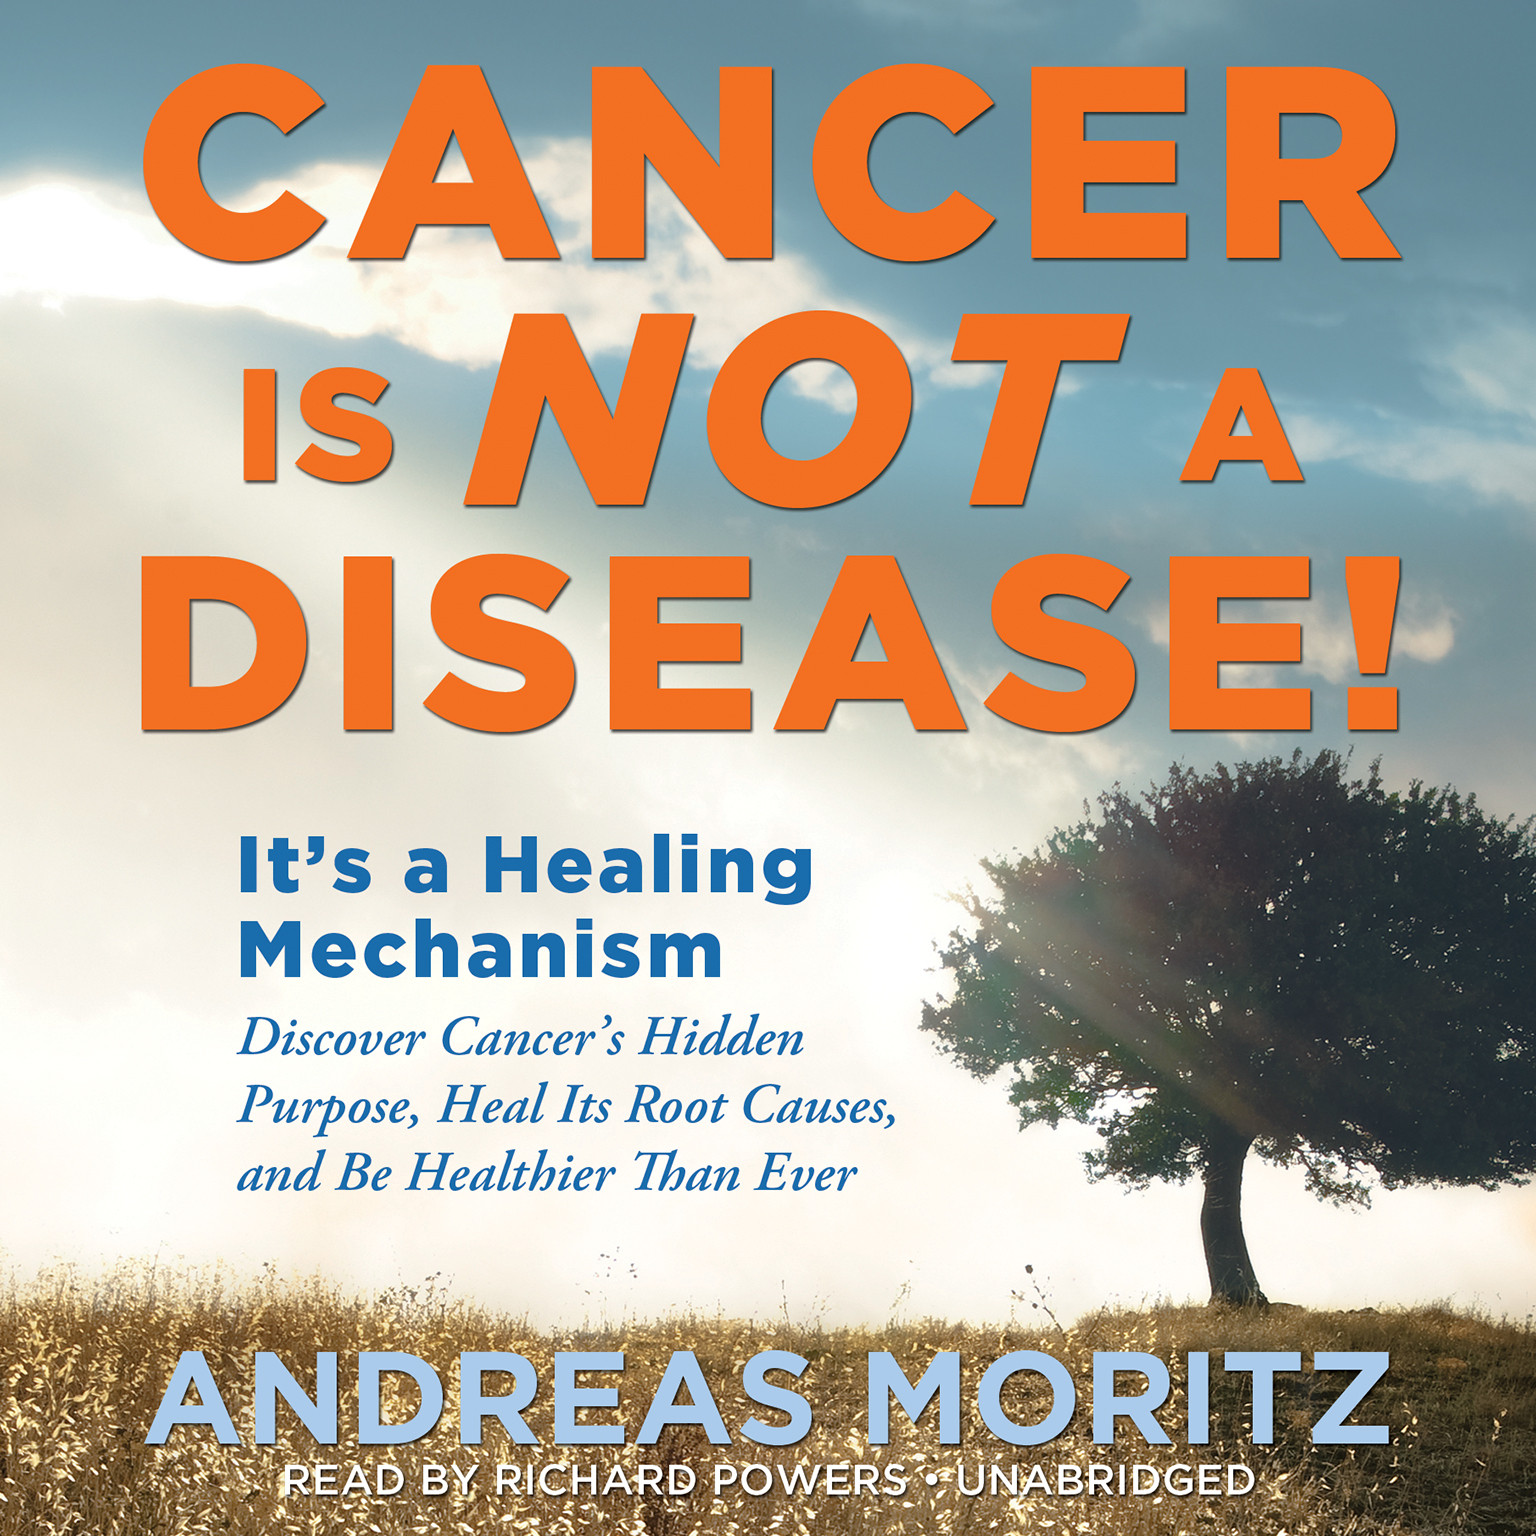 Printable Cancer Is Not a Disease!: It's a Healing Mechanism; Discover Cancer's Hidden Purpose, Heal Its Root Causes, and Be Healthier Than Ever Audiobook Cover Art